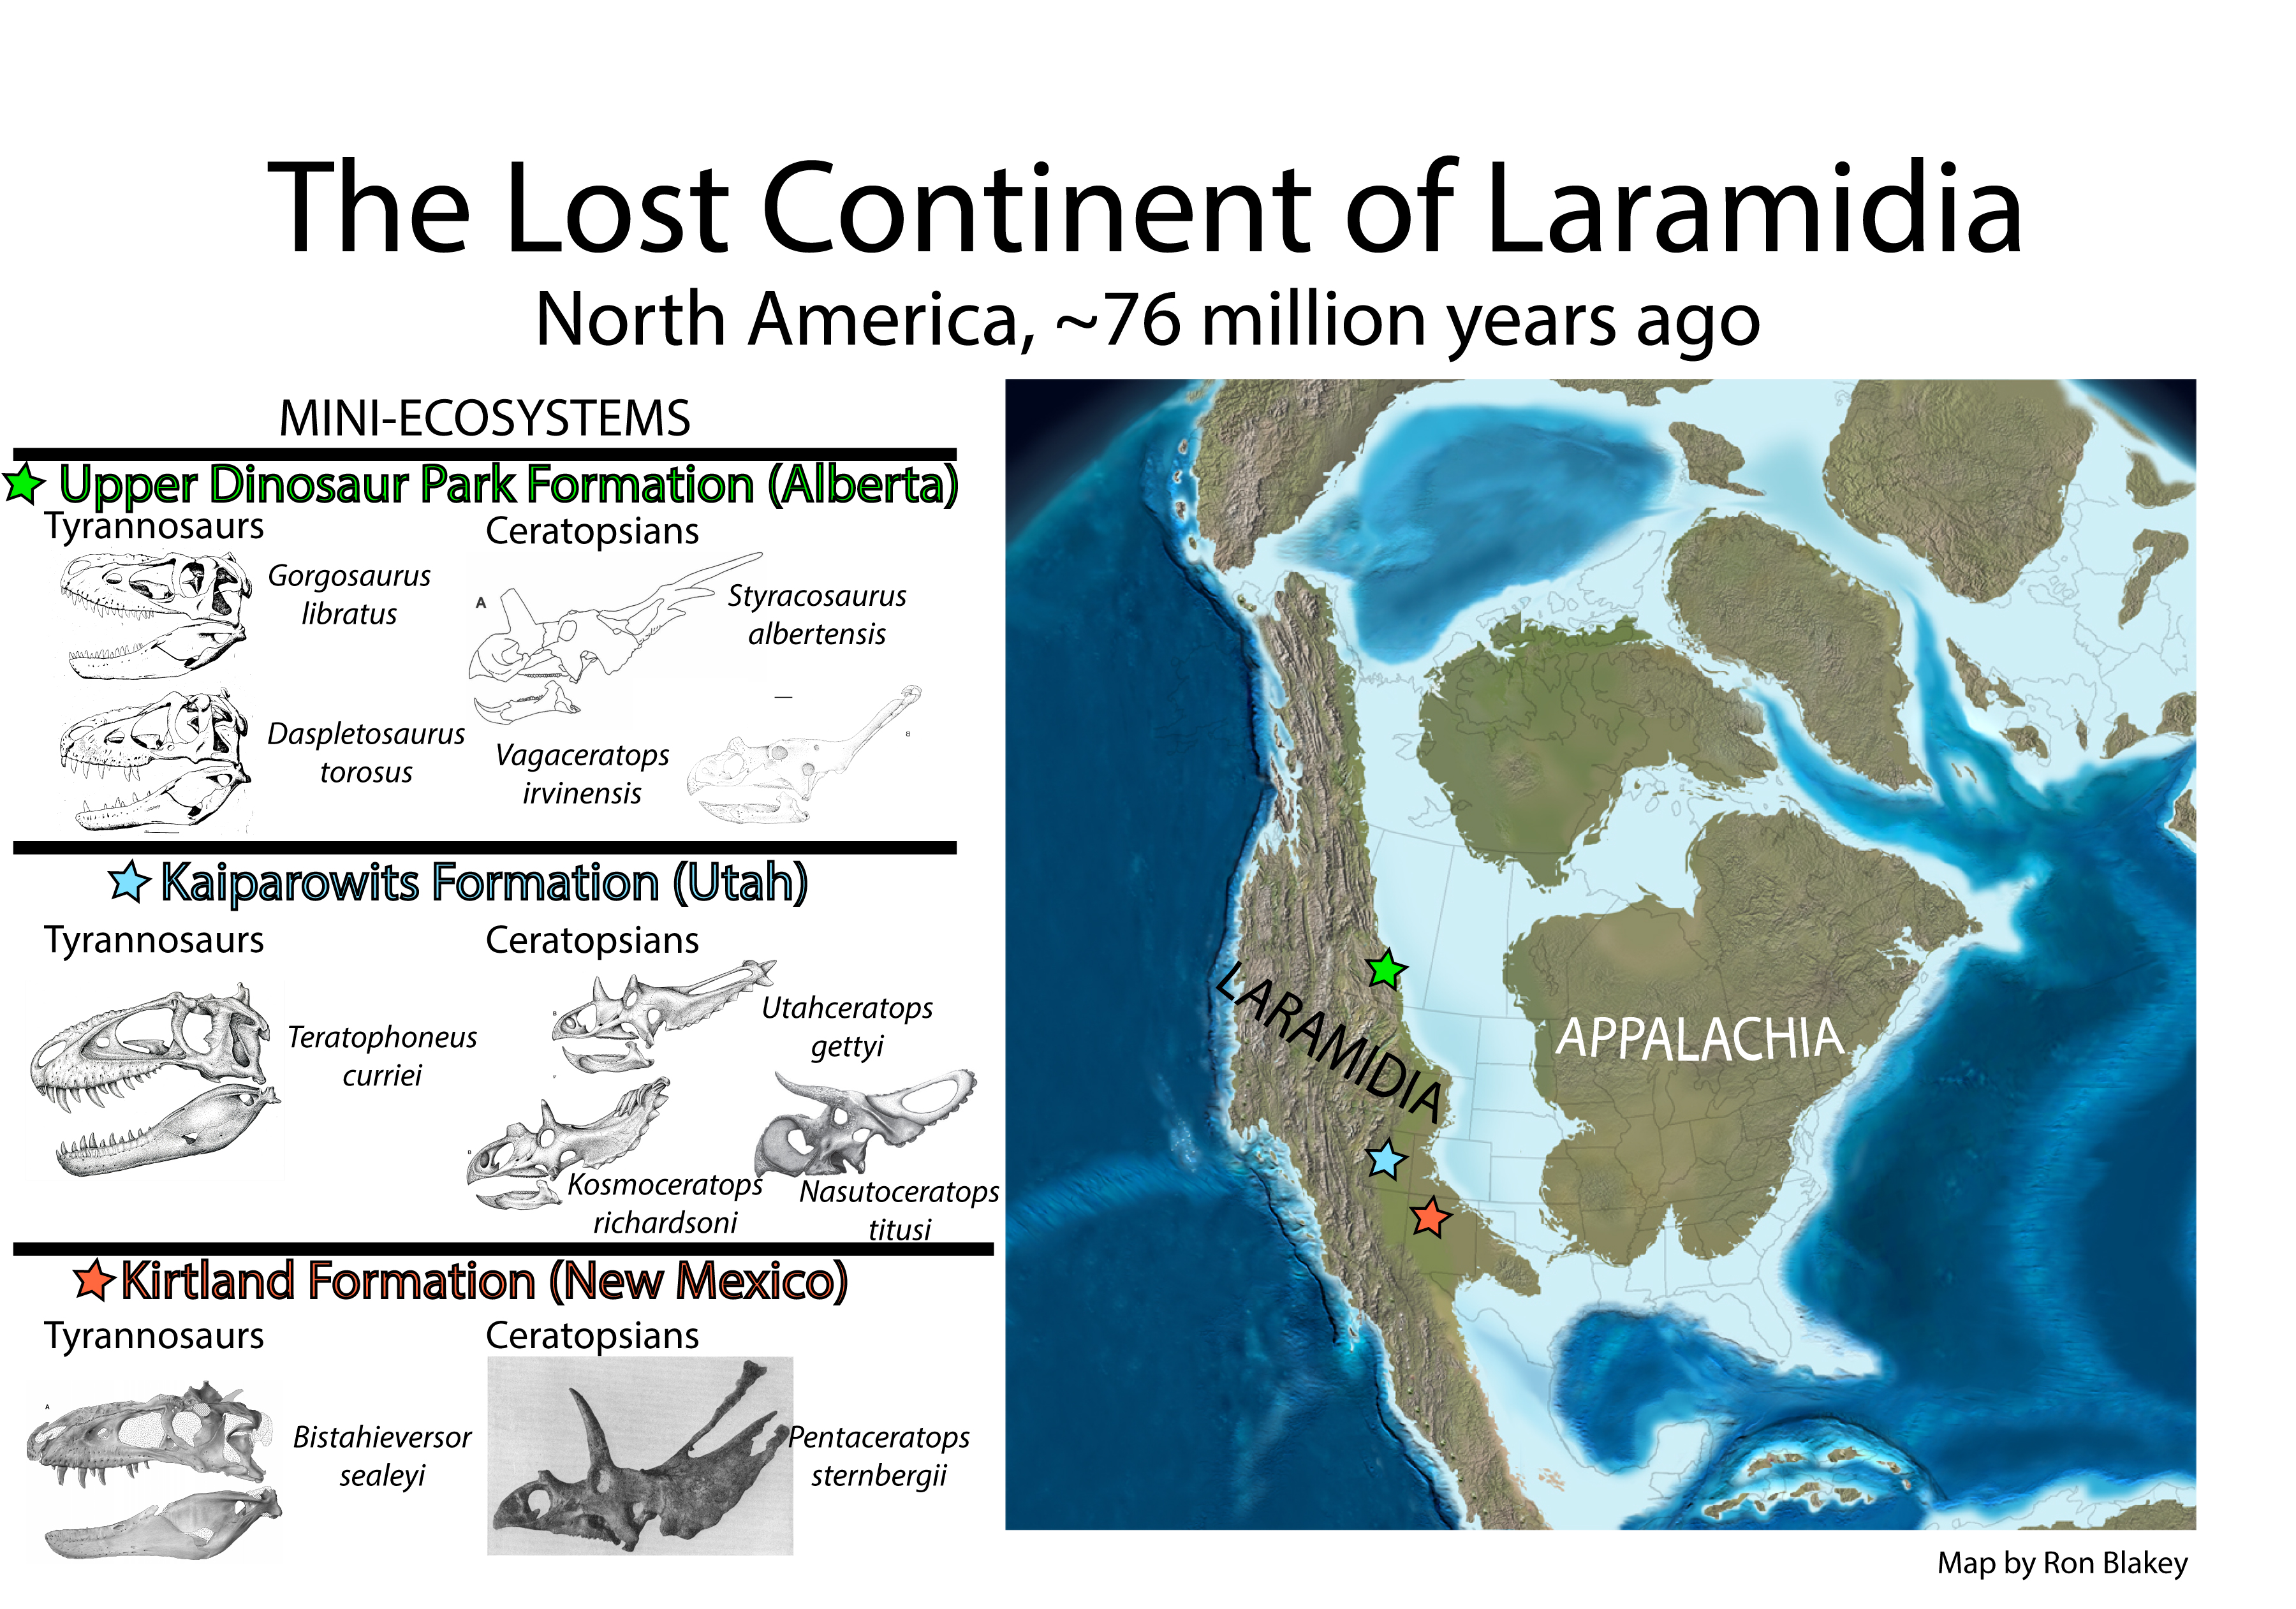 Laramidia ecosystems at the same time North America Cretaceous Dinosaur Park Formation Kaiparawits formation and Kirtland Formation